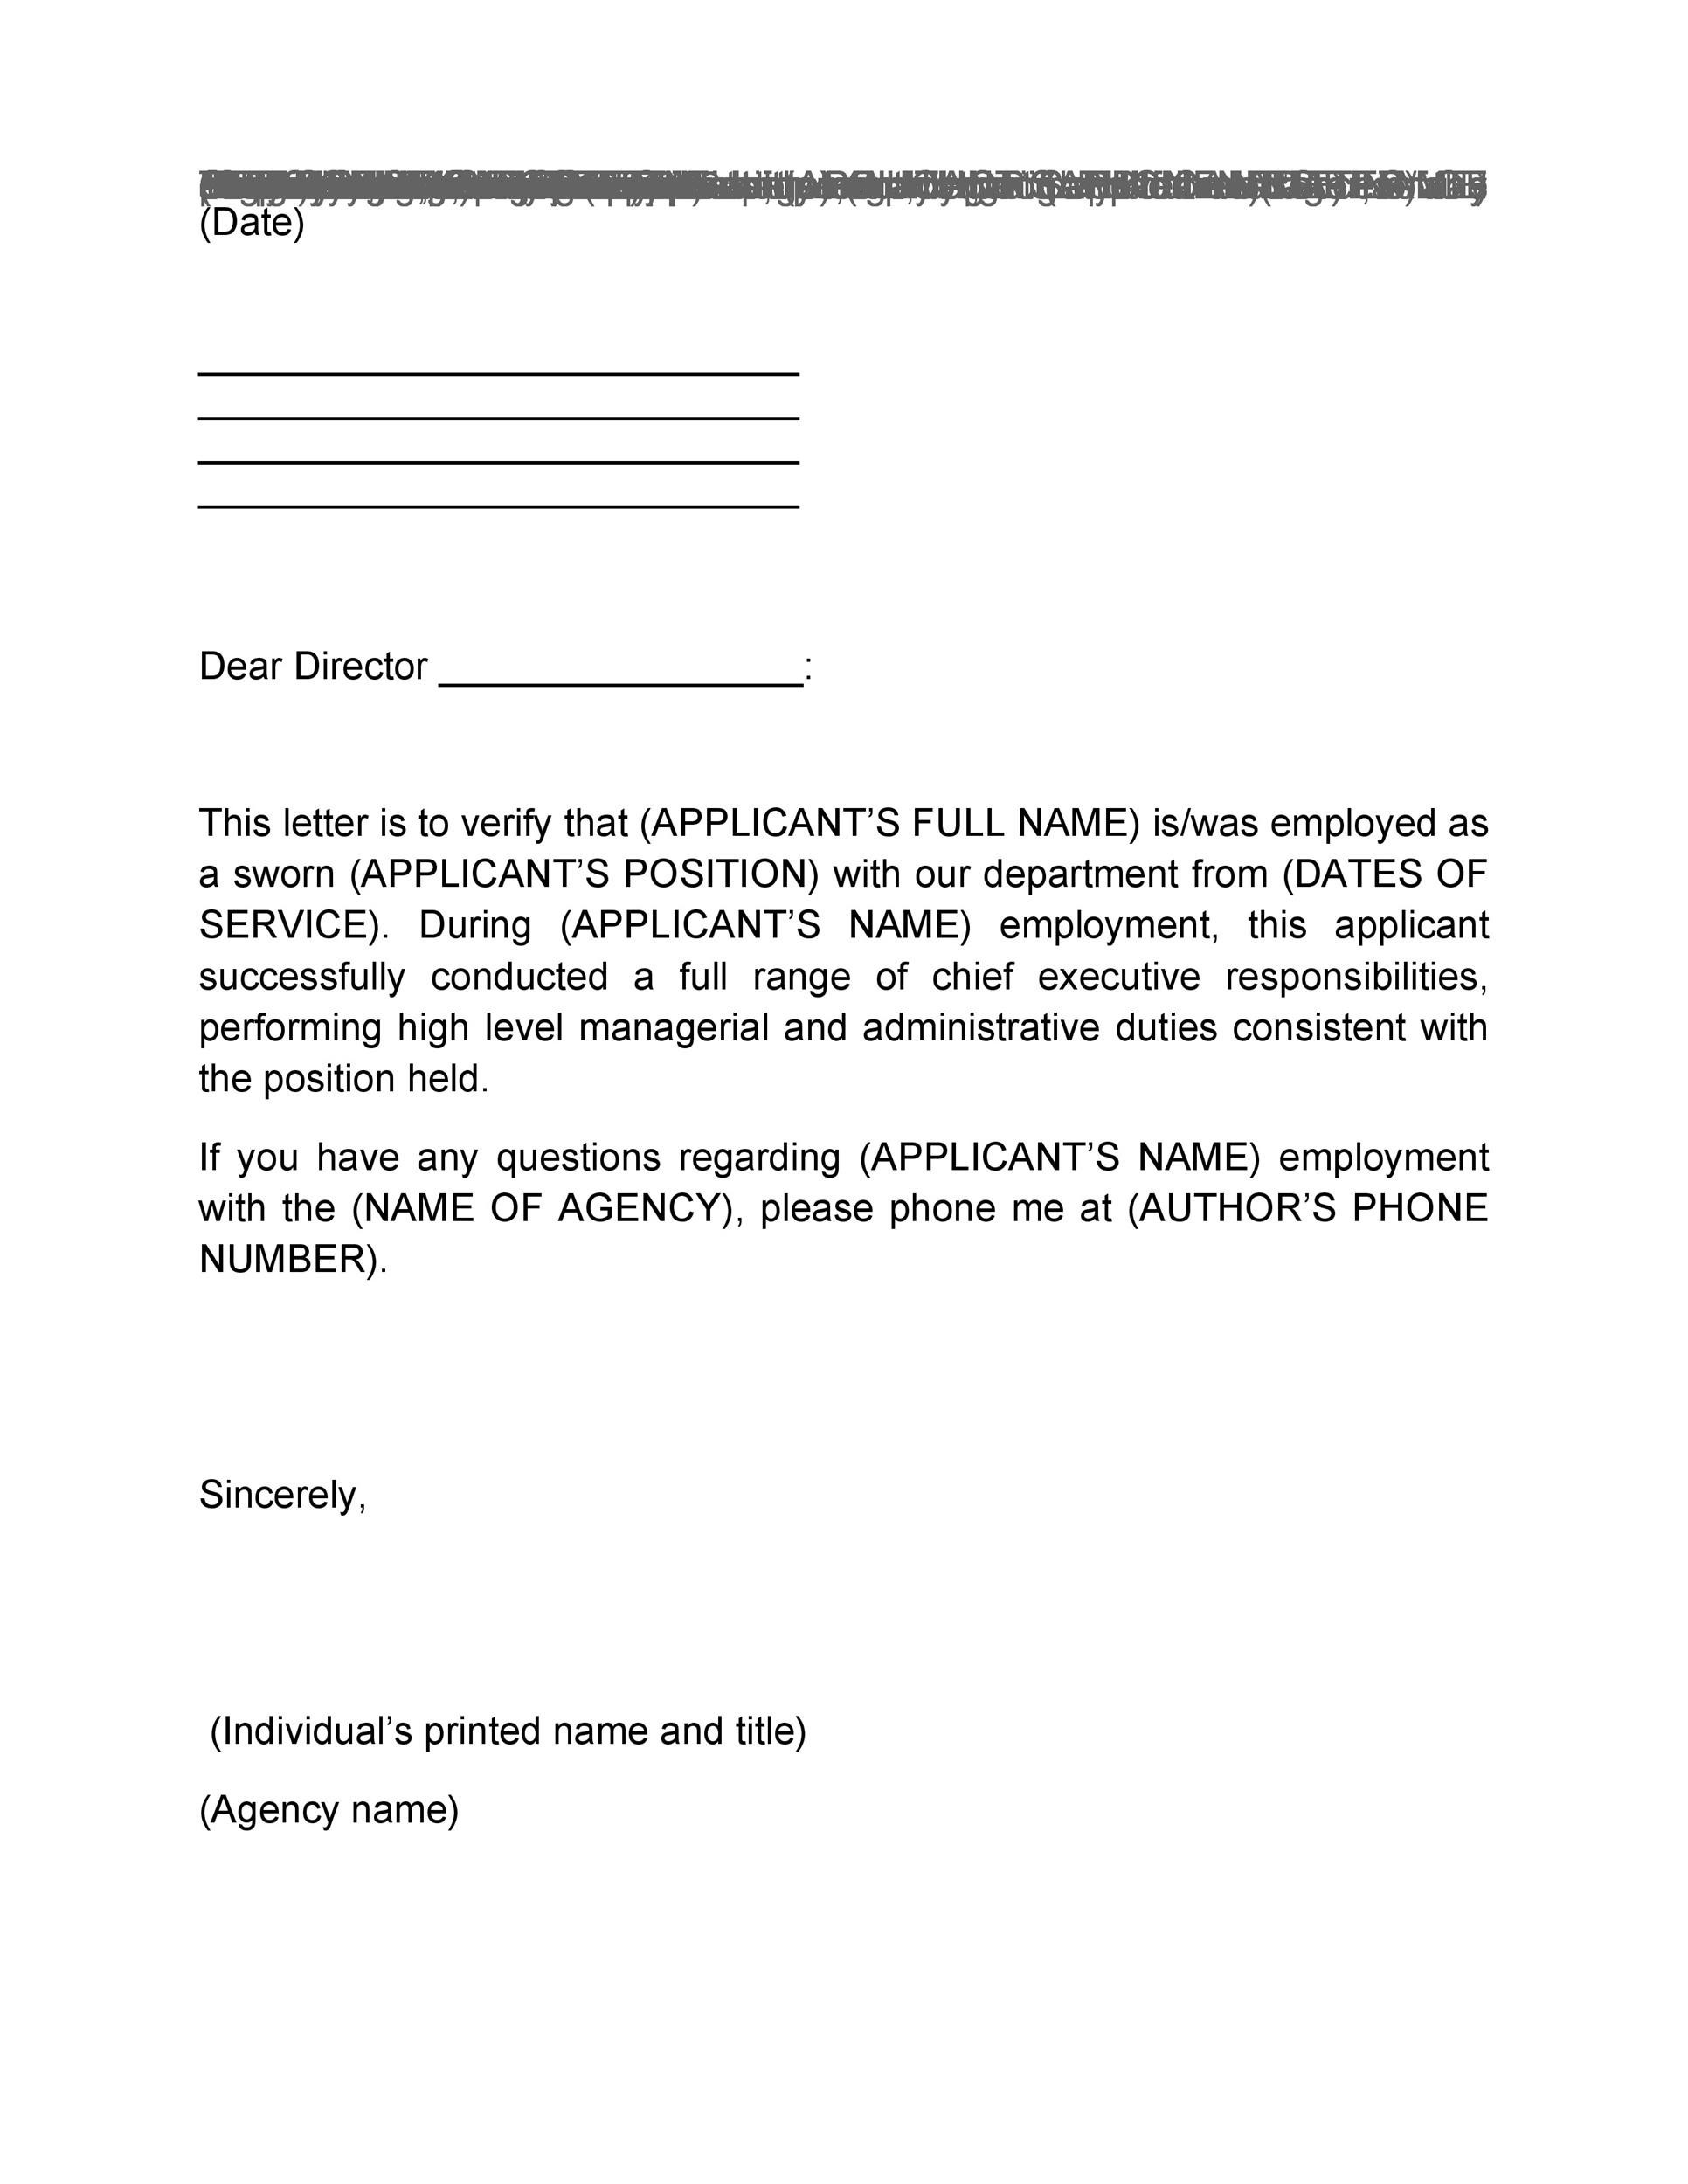 employment verification letter from employer   Hadi.palmex.co